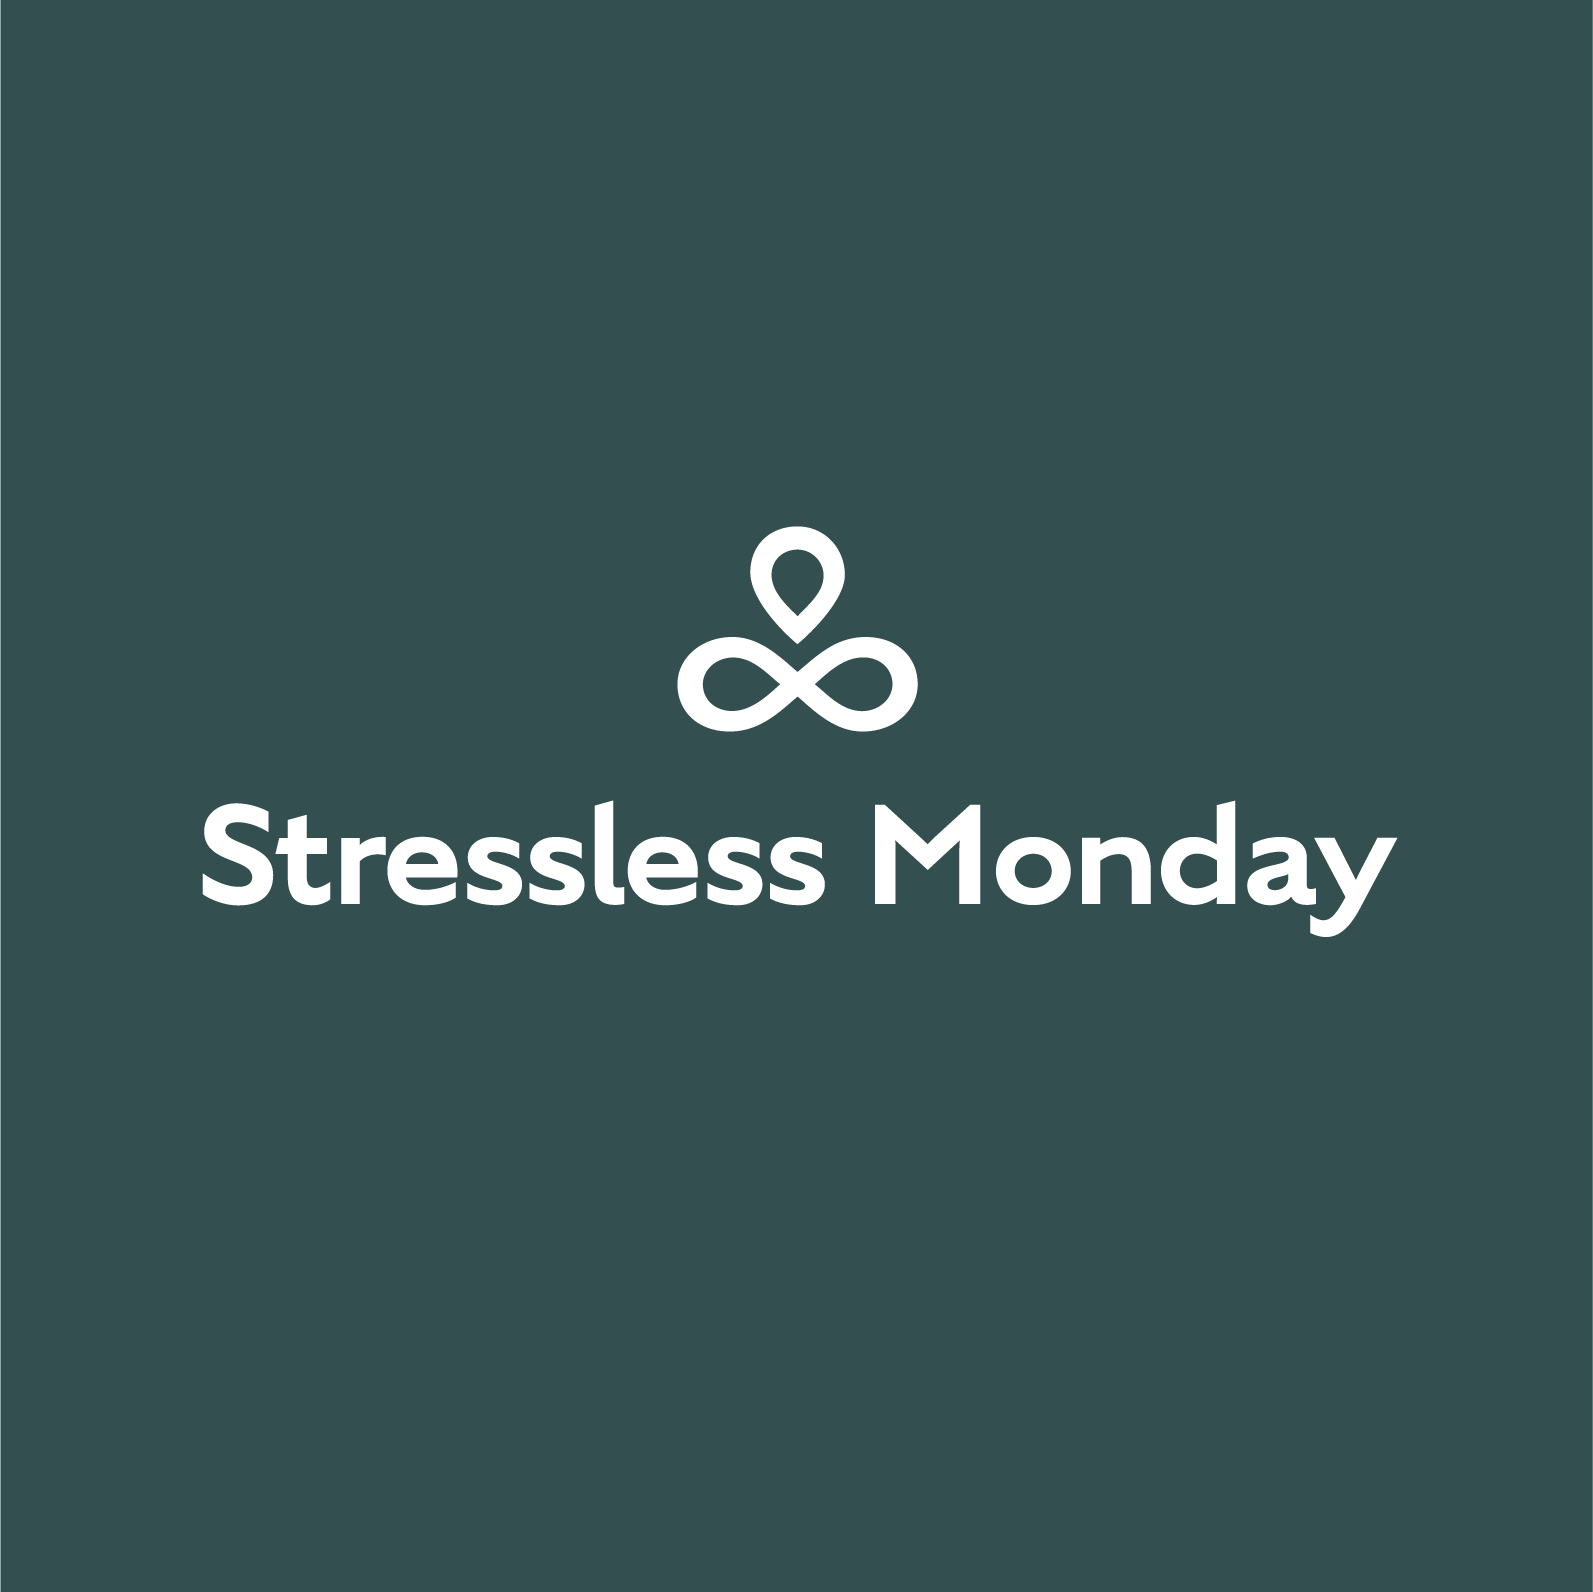 stressless monday full logo dark_1@4x